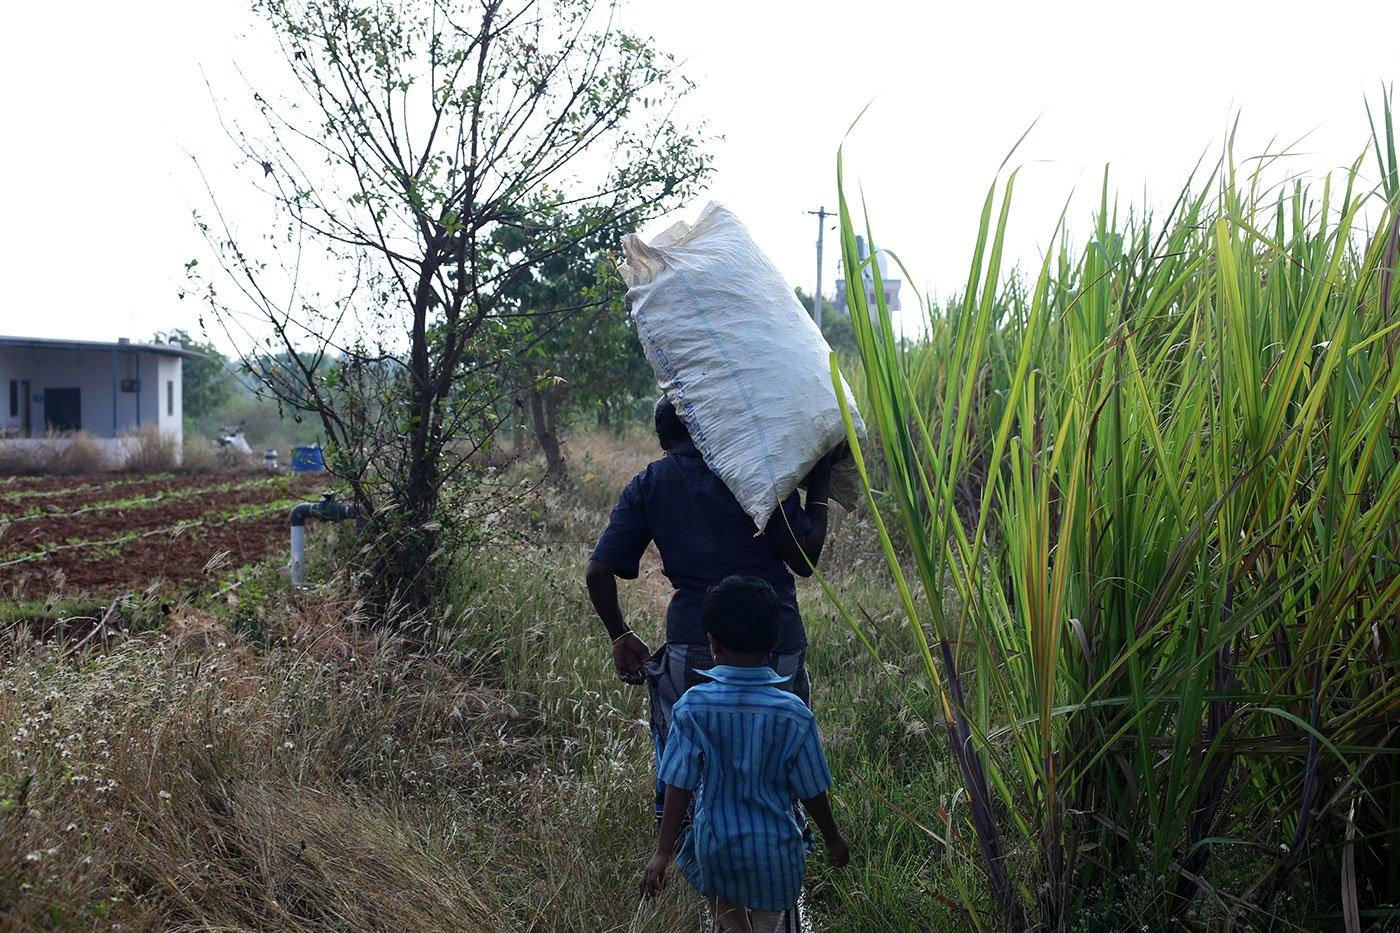 Iniya walks behind, as her mother carries home a sack of produce